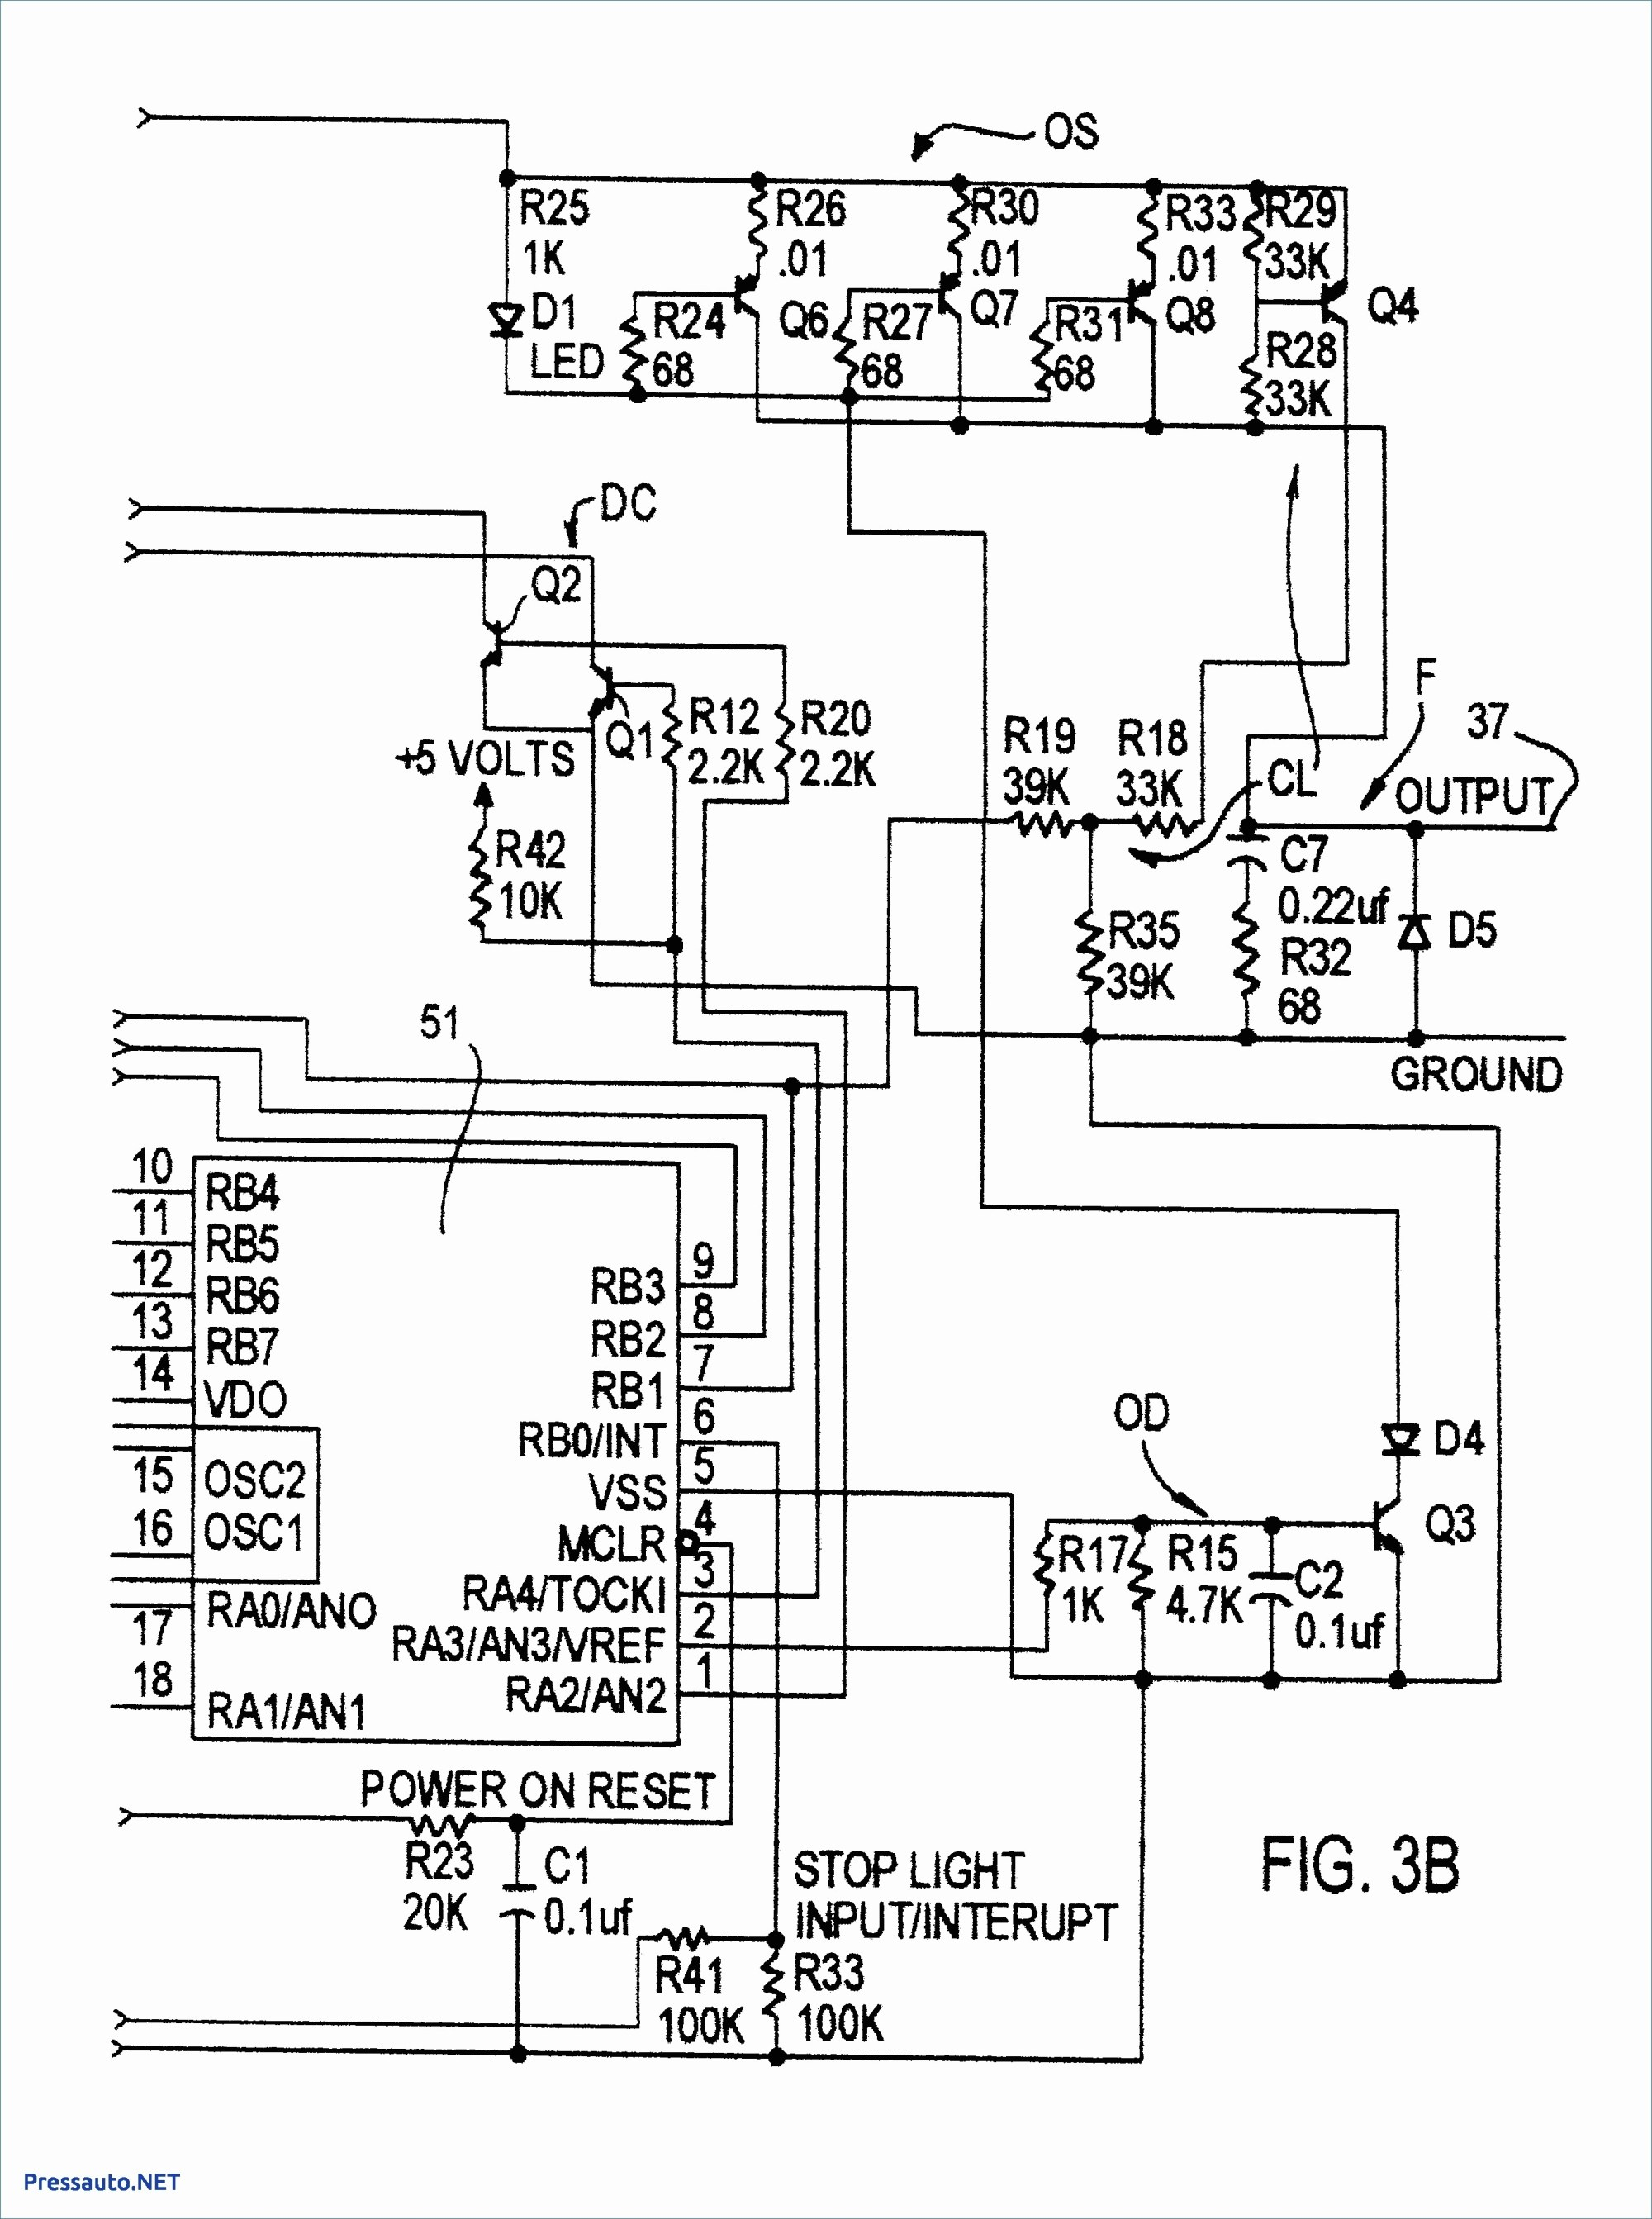 hight resolution of 2004 chrysler pacifica wiring schematic full size of wiring diagram 2004 chrysler pacifica wiring diagram